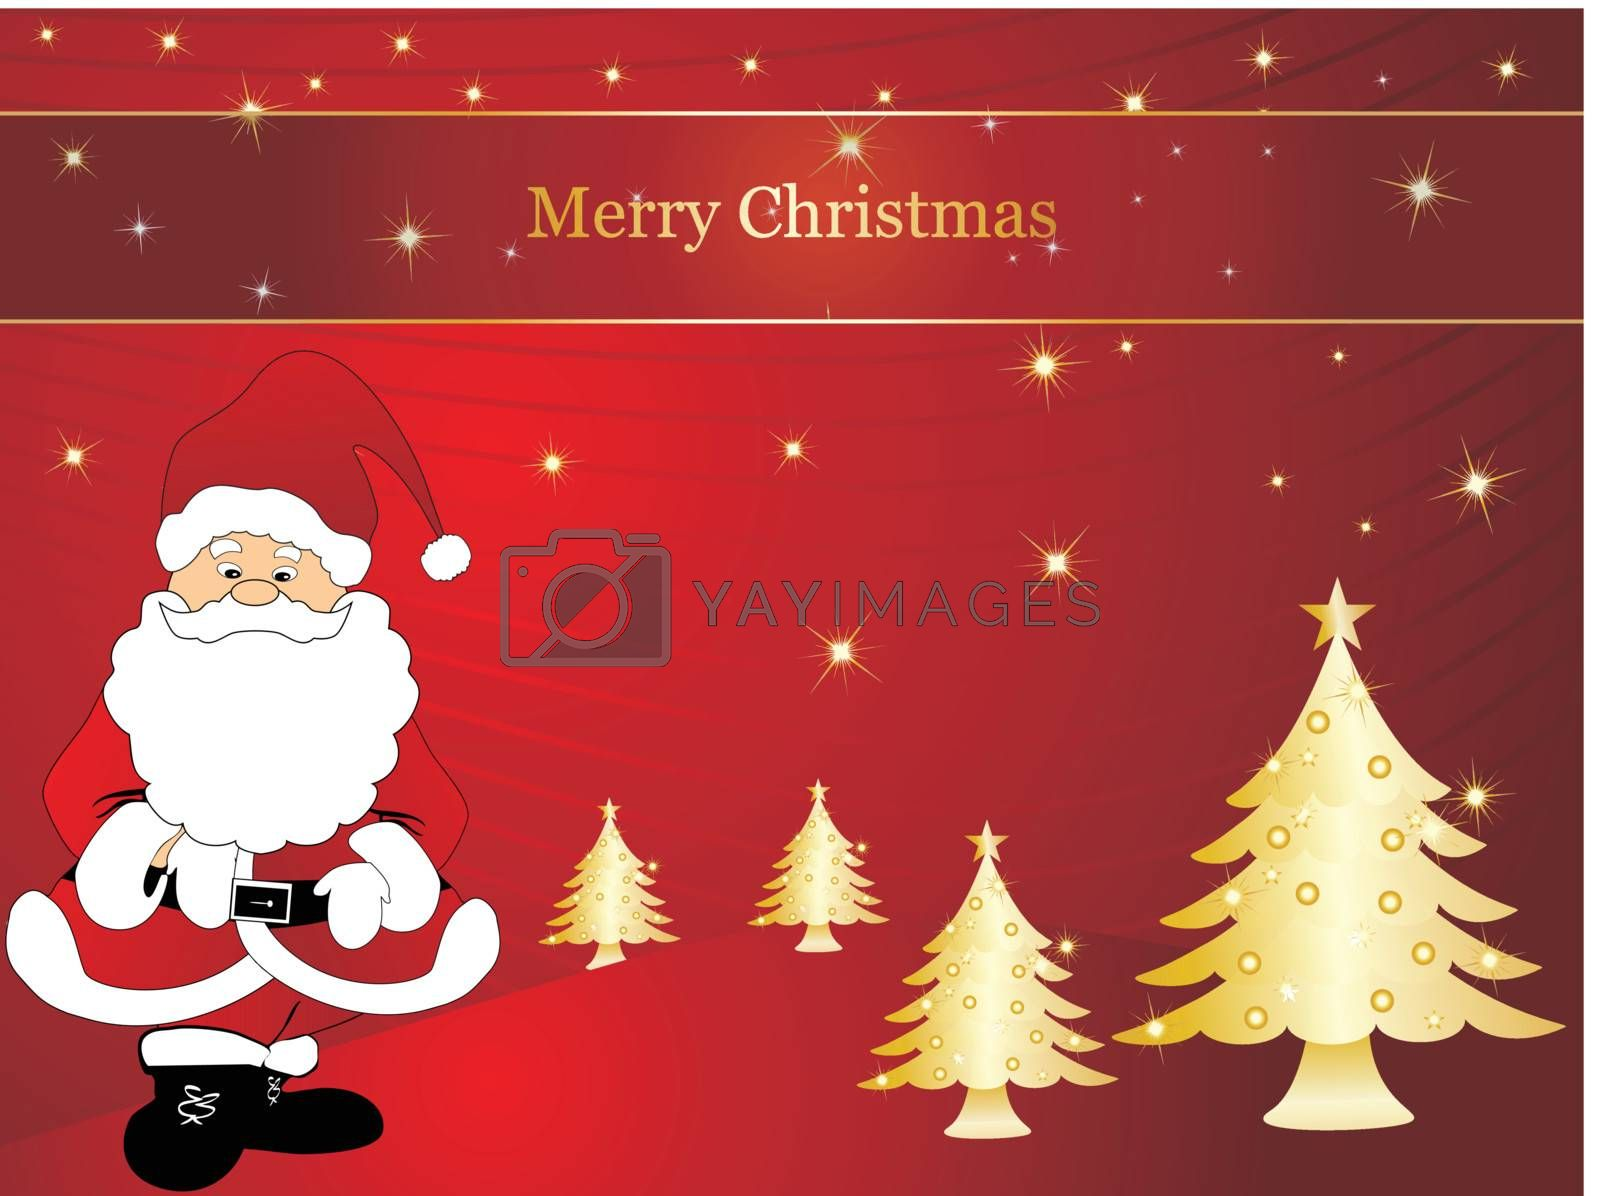 wallpaper, christmas vector background with santa claus by aispl